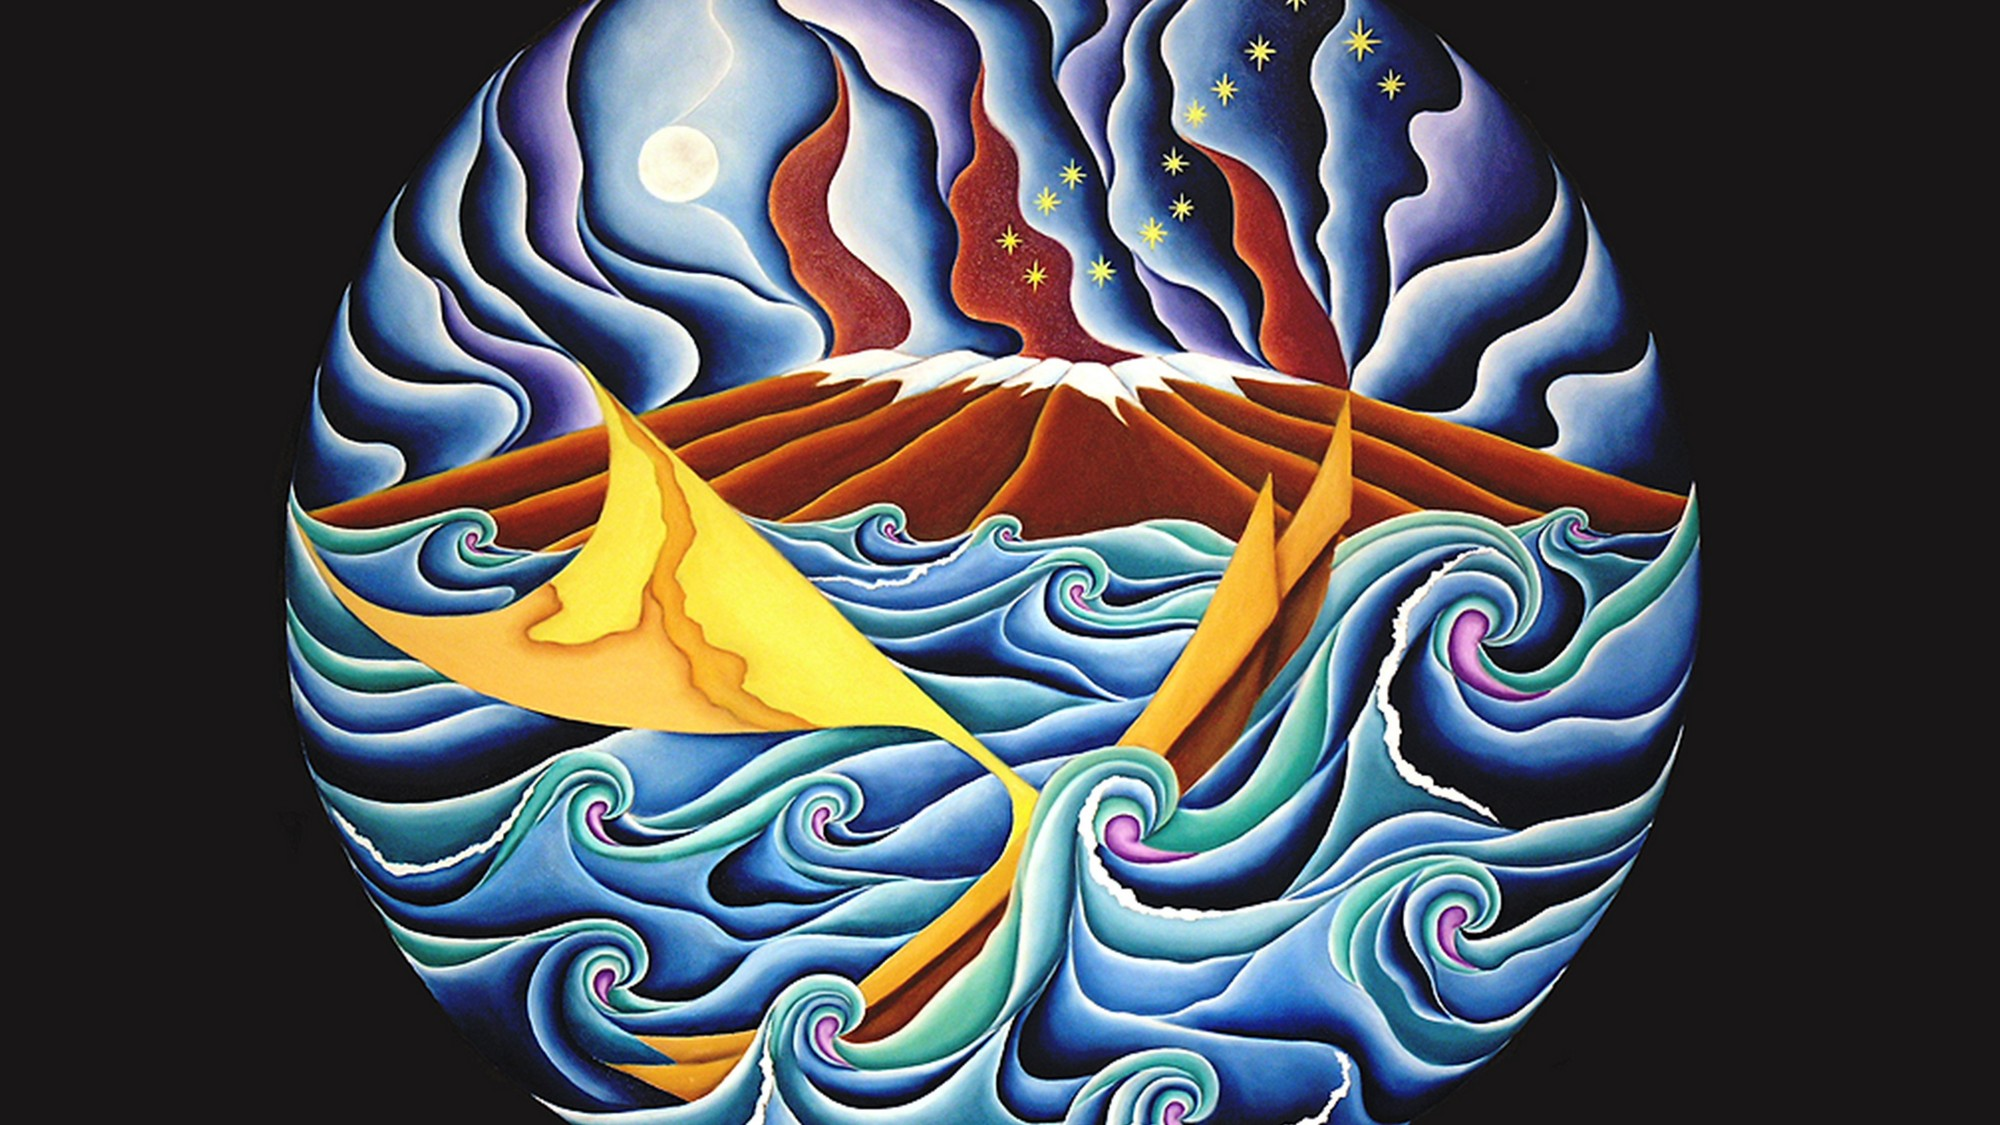 Painting of voyaging canoe in ocean, waves, island in background, stars above.